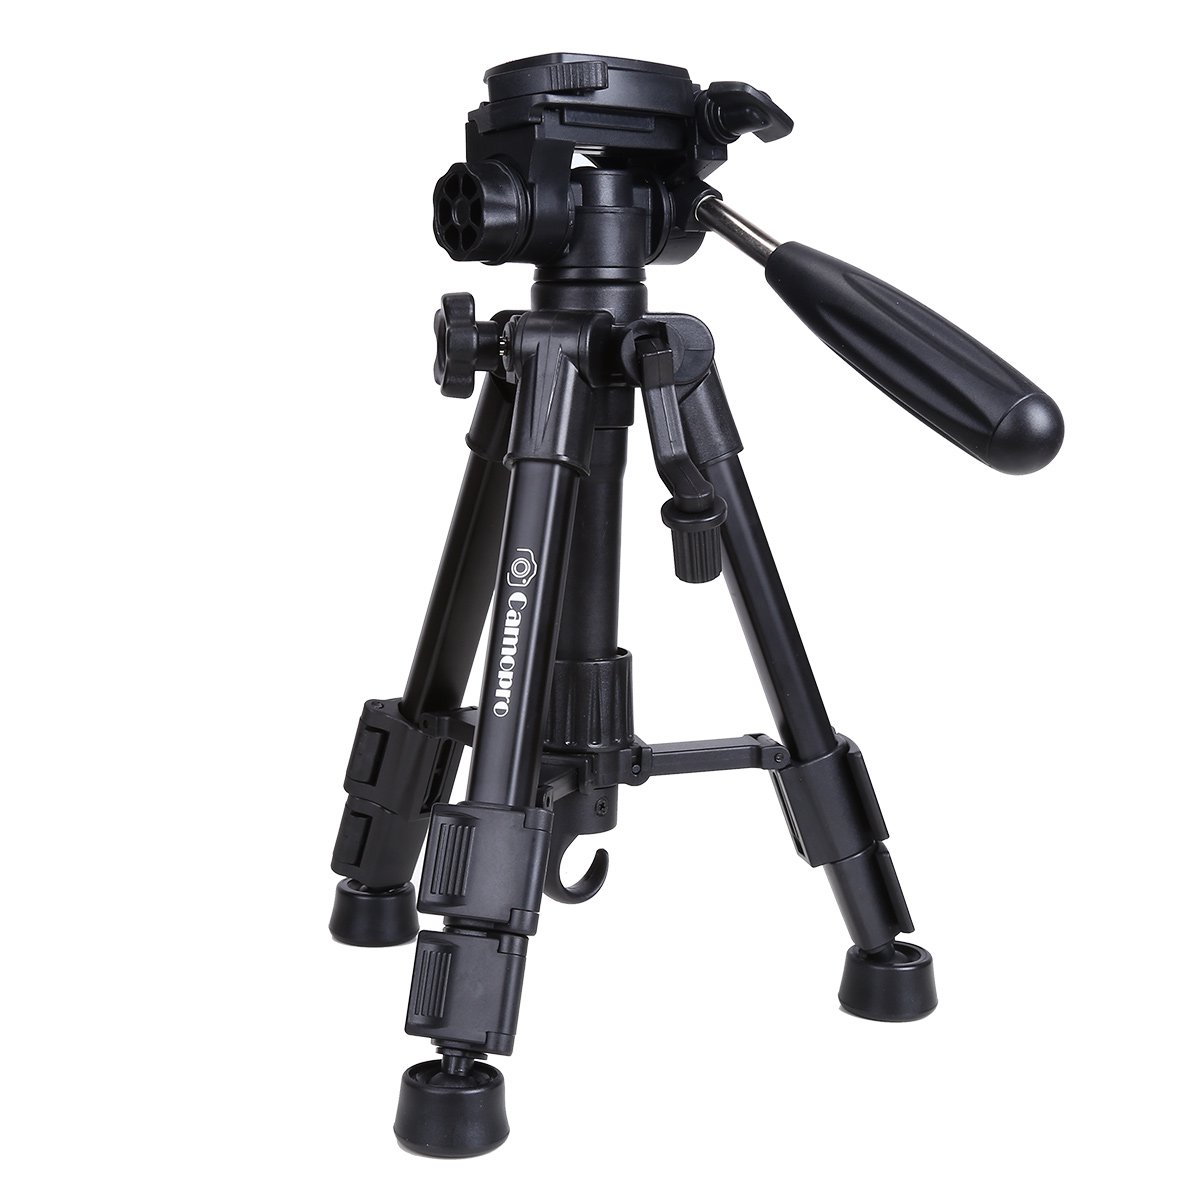 Mini Tripod - Camopro Portable Desktop Mini Tabletop Tripod for SLR DSLR Camera iPhones Smartphones Binoculars and Camcorder with 3-Way Head, Quick Release Plate and Carrying Bag by Camopro